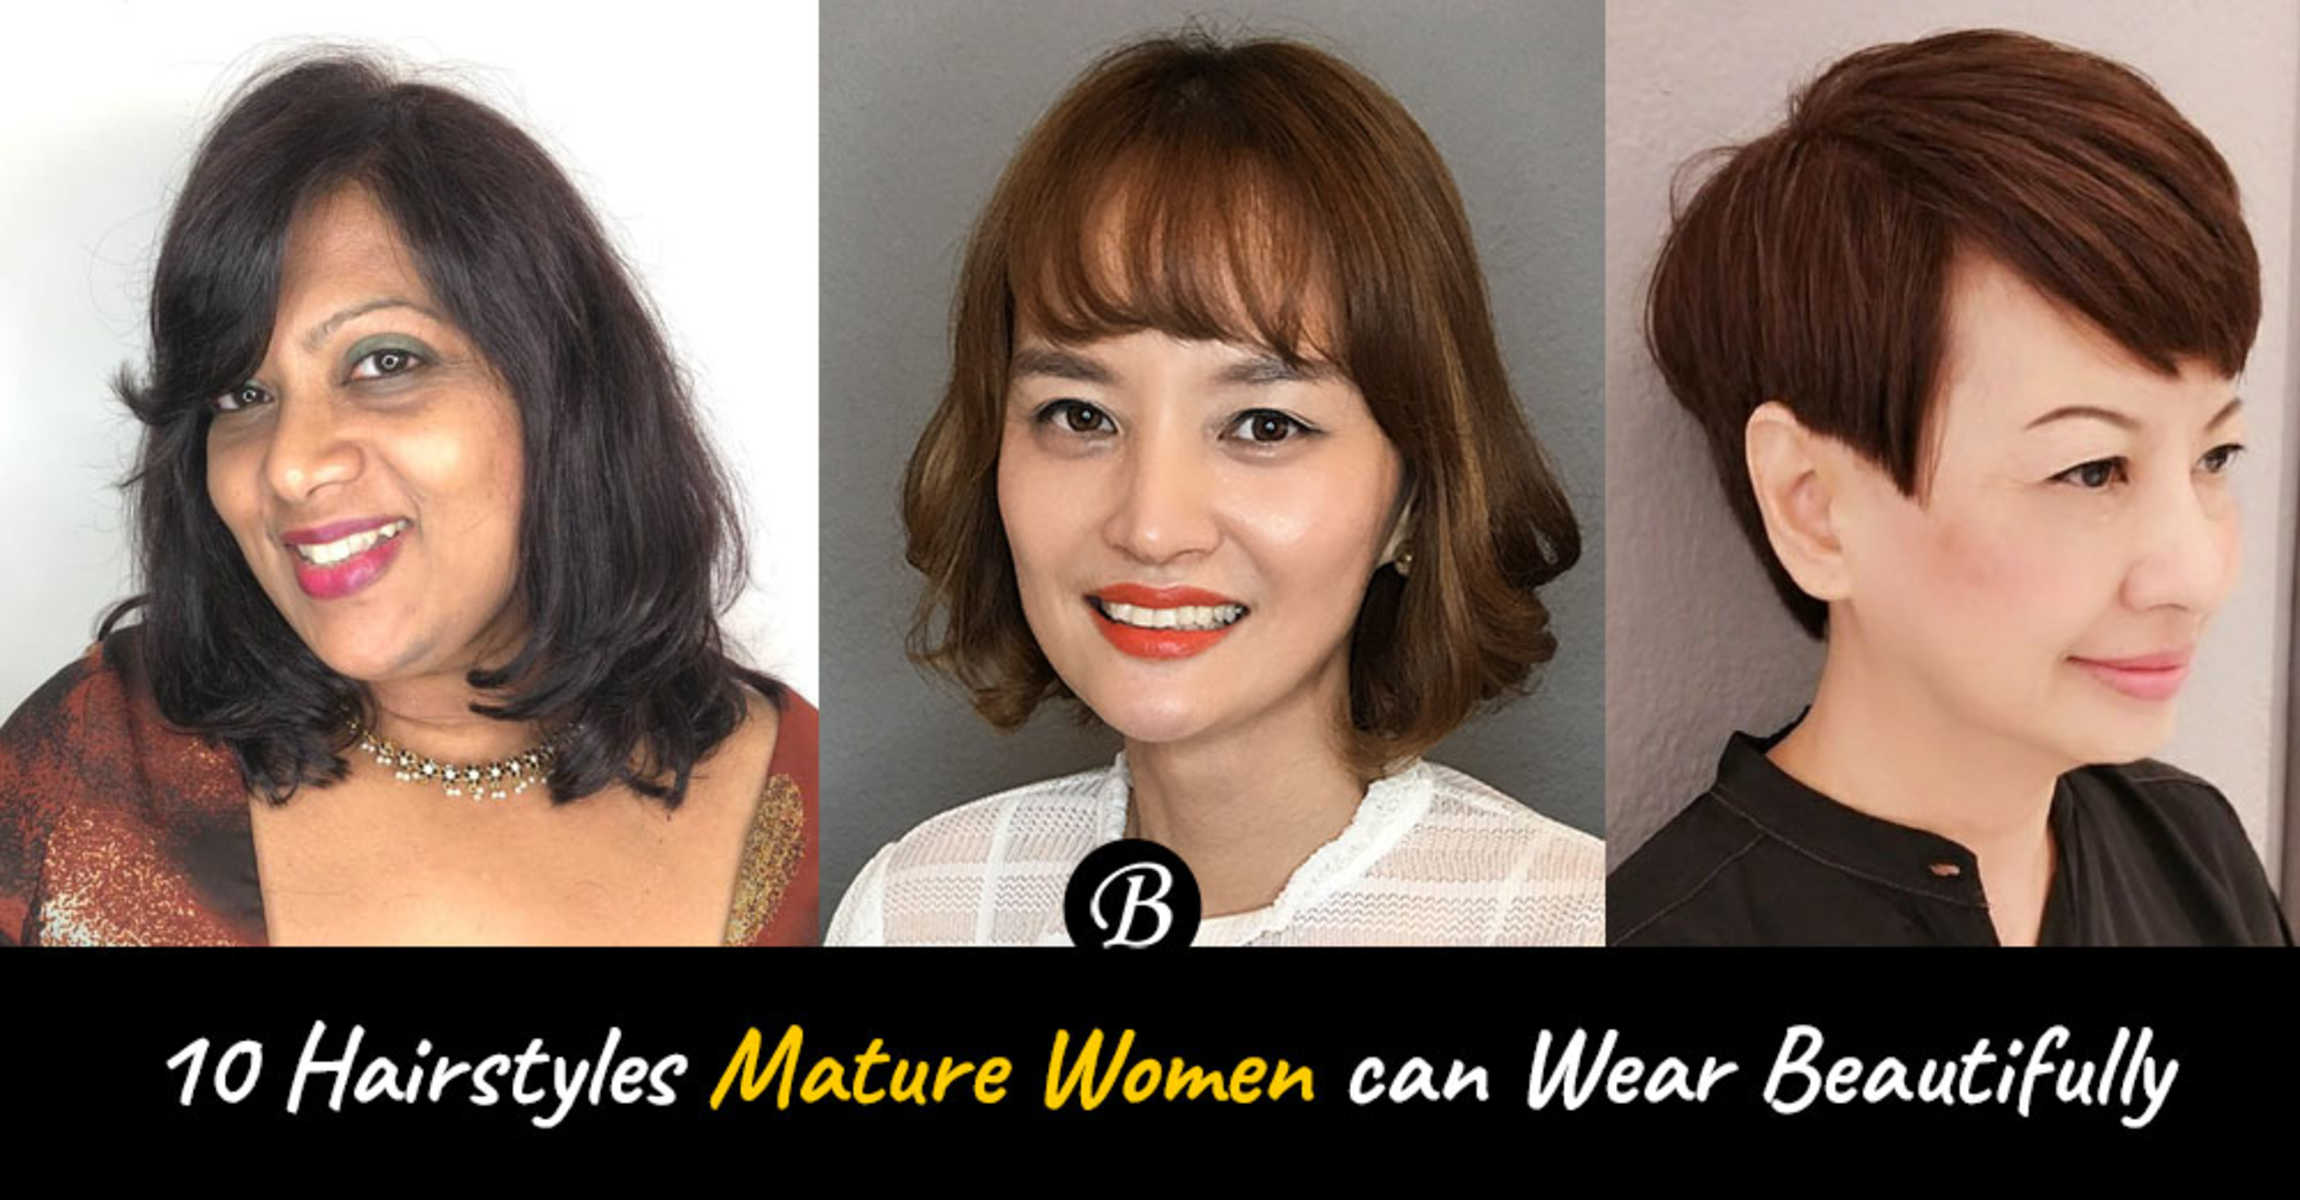 10 Stylish Hairstyles That Mature Women Can Carry Off Beautifully